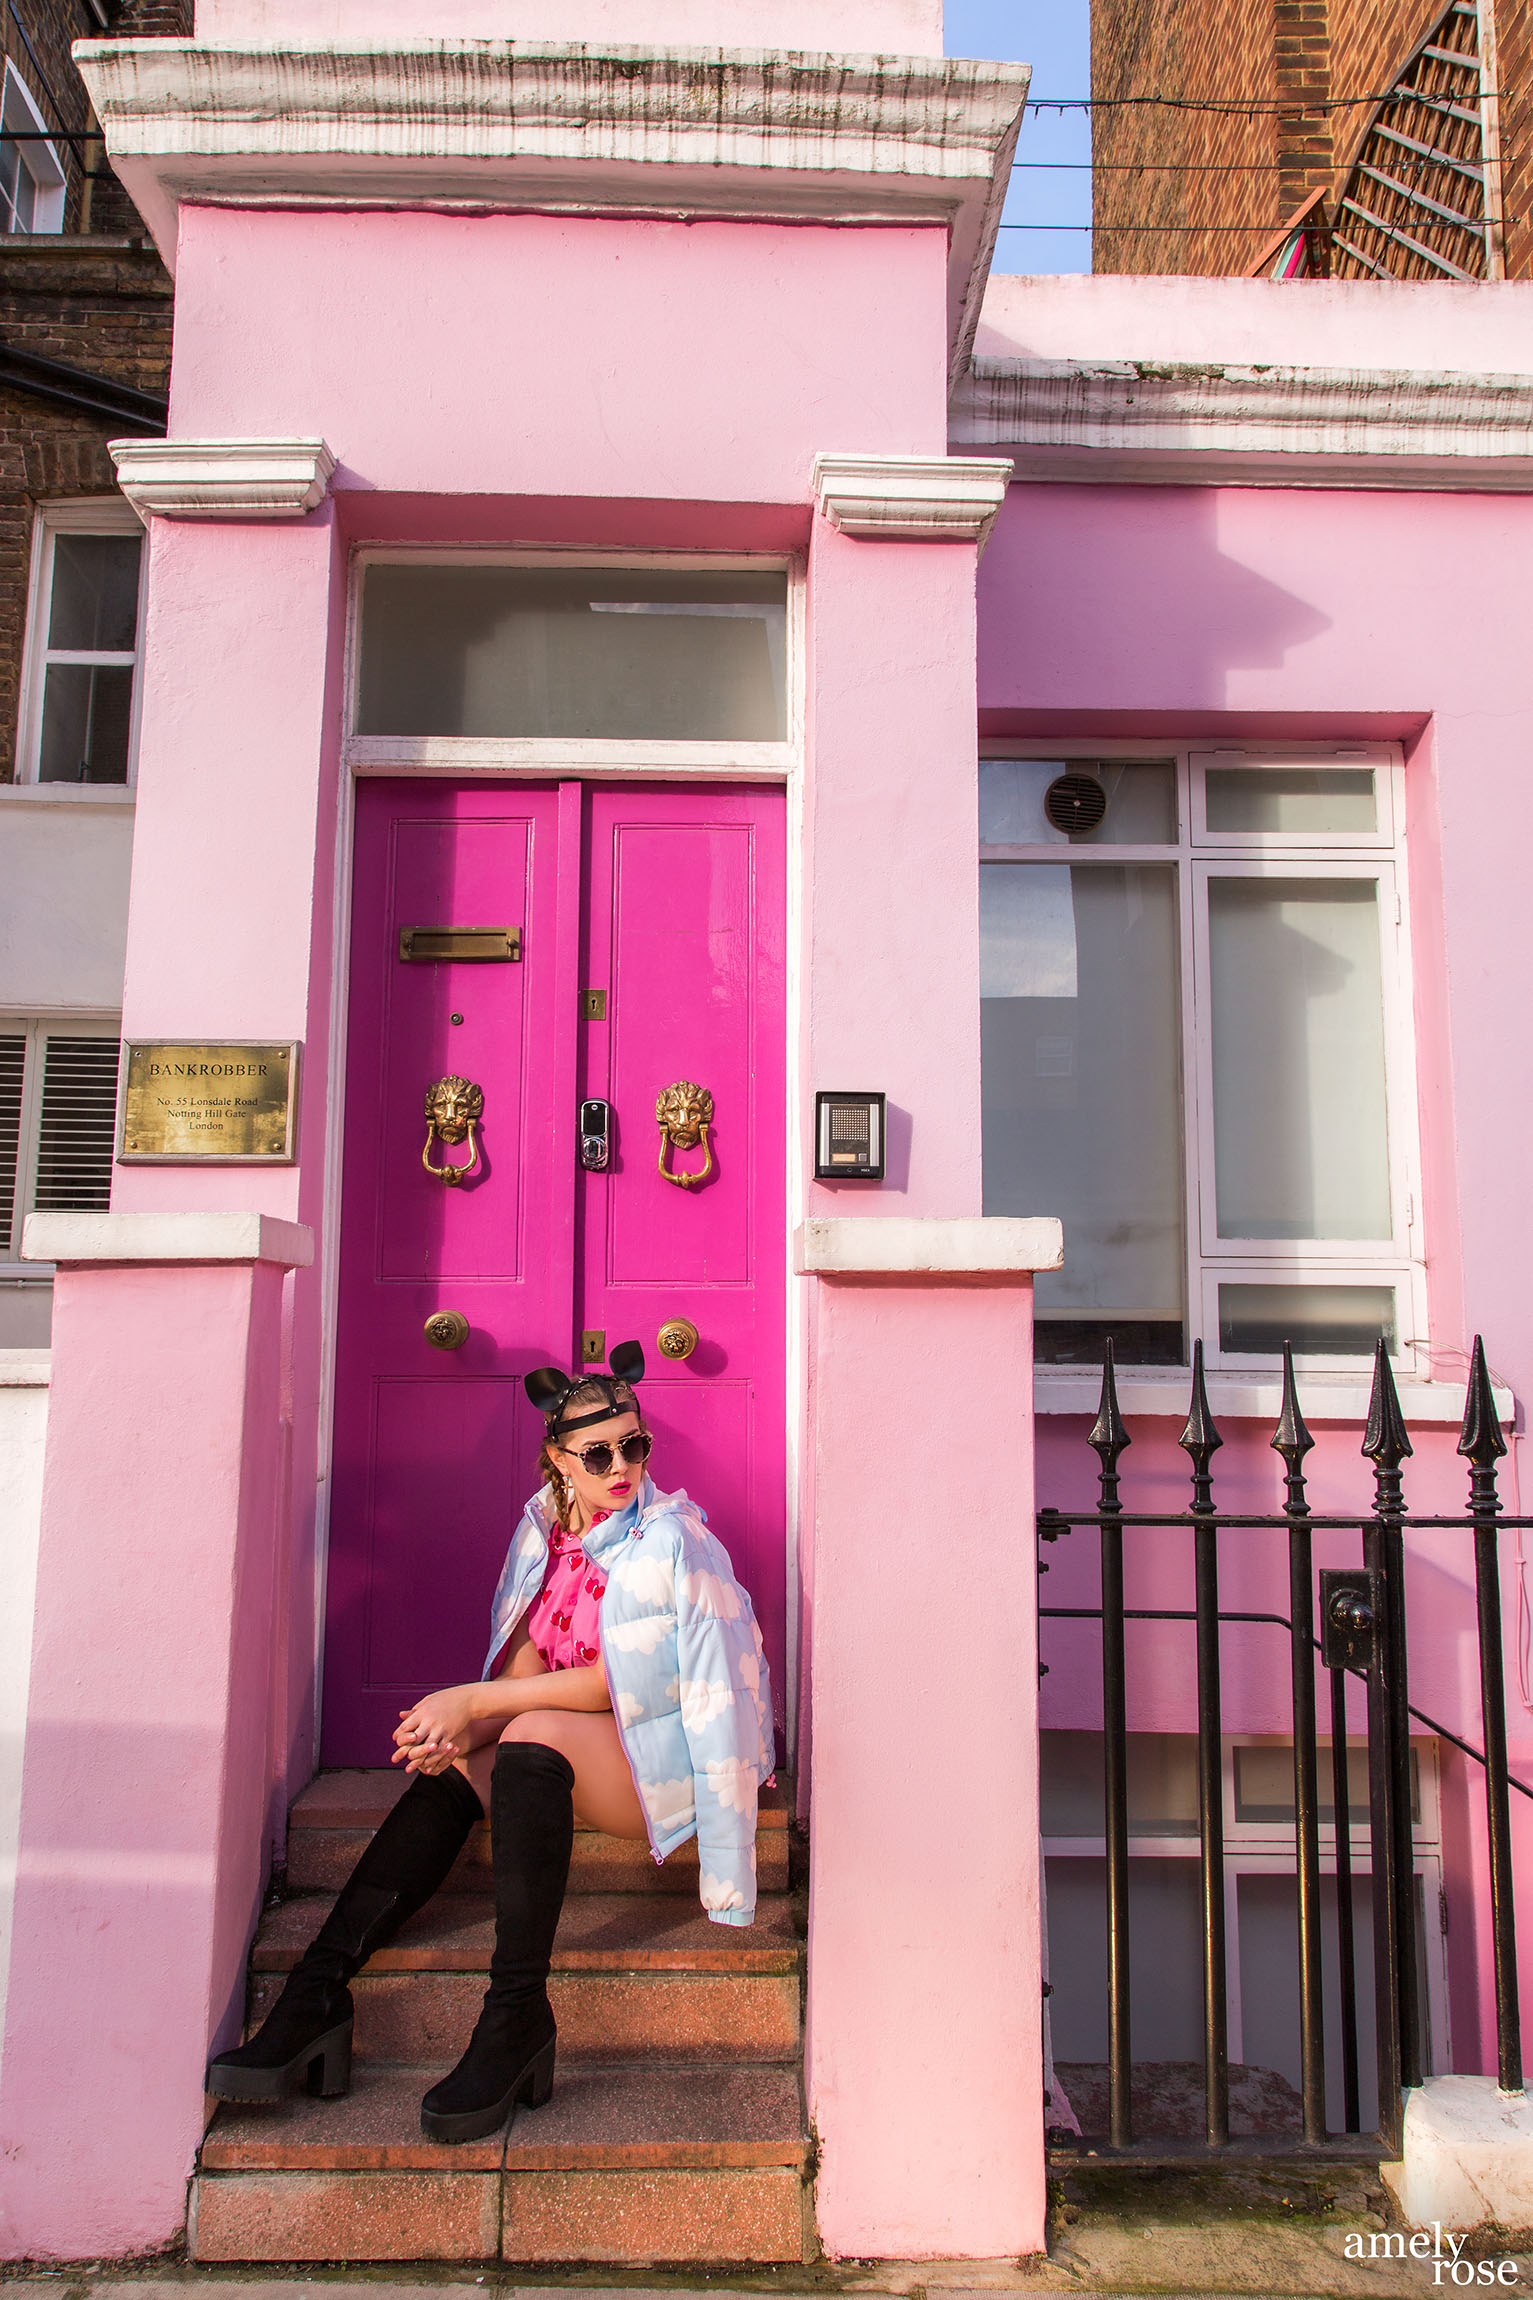 pink Barbie house and Amely Rose wearing a cloud jacket